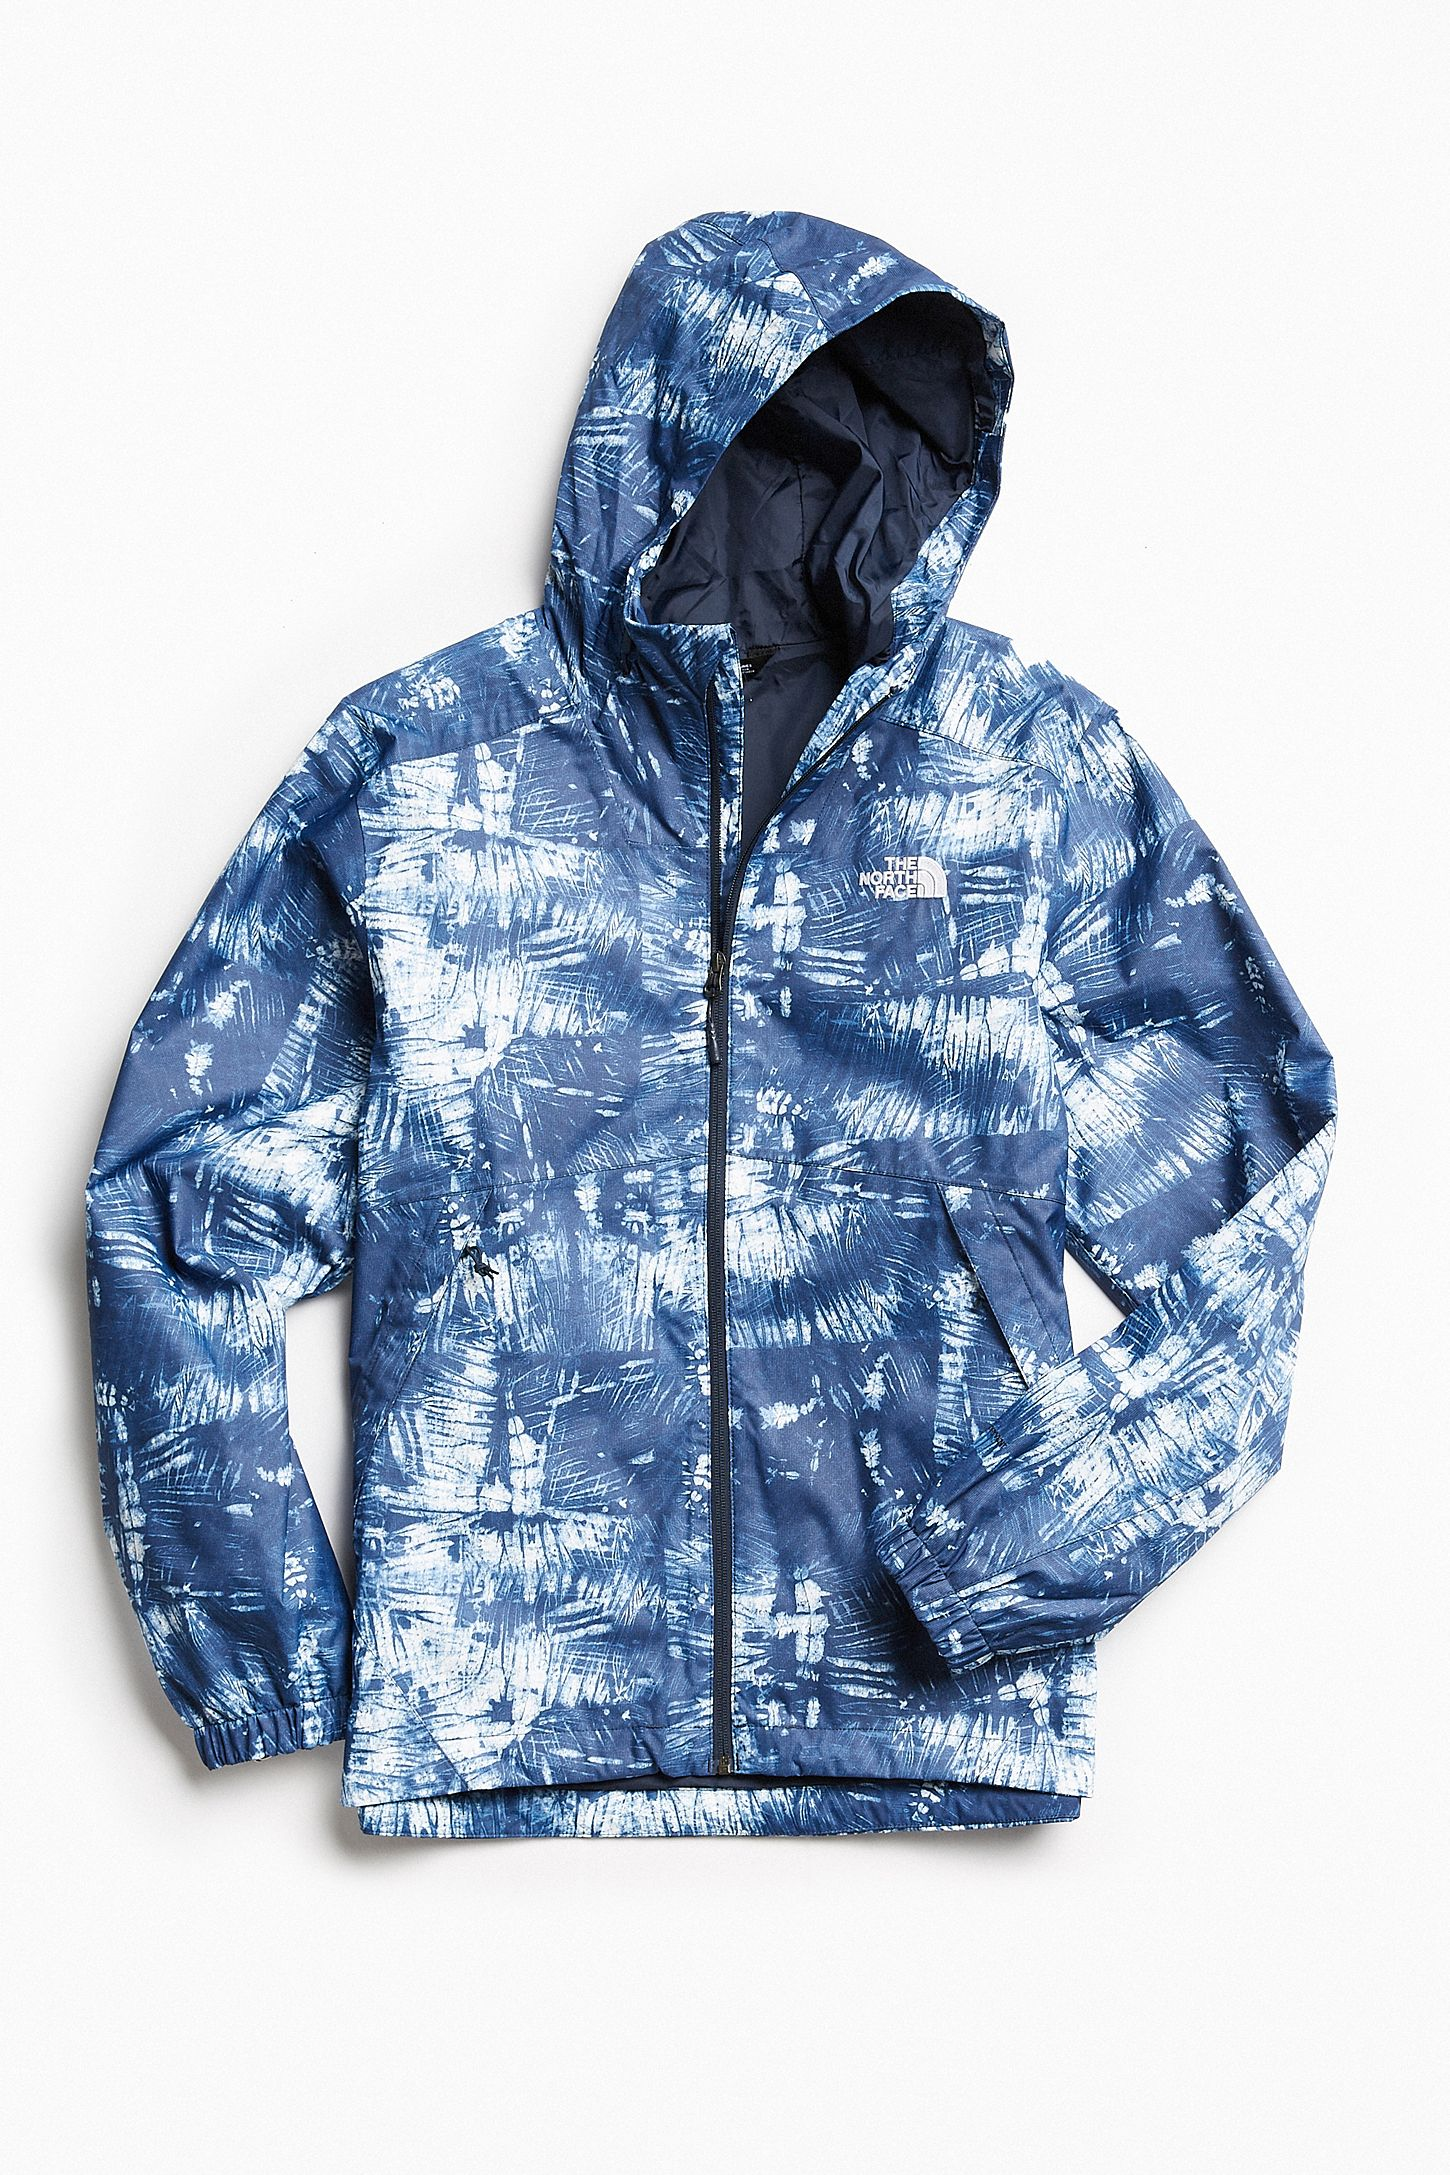 5f9f8acc53 Get Our Emails. Get Our Emails. ALLSPORTS  THE NORTH FACE MENS MILLERTON  JACKET North Face jacket mountain parka men black NF0A33Q6